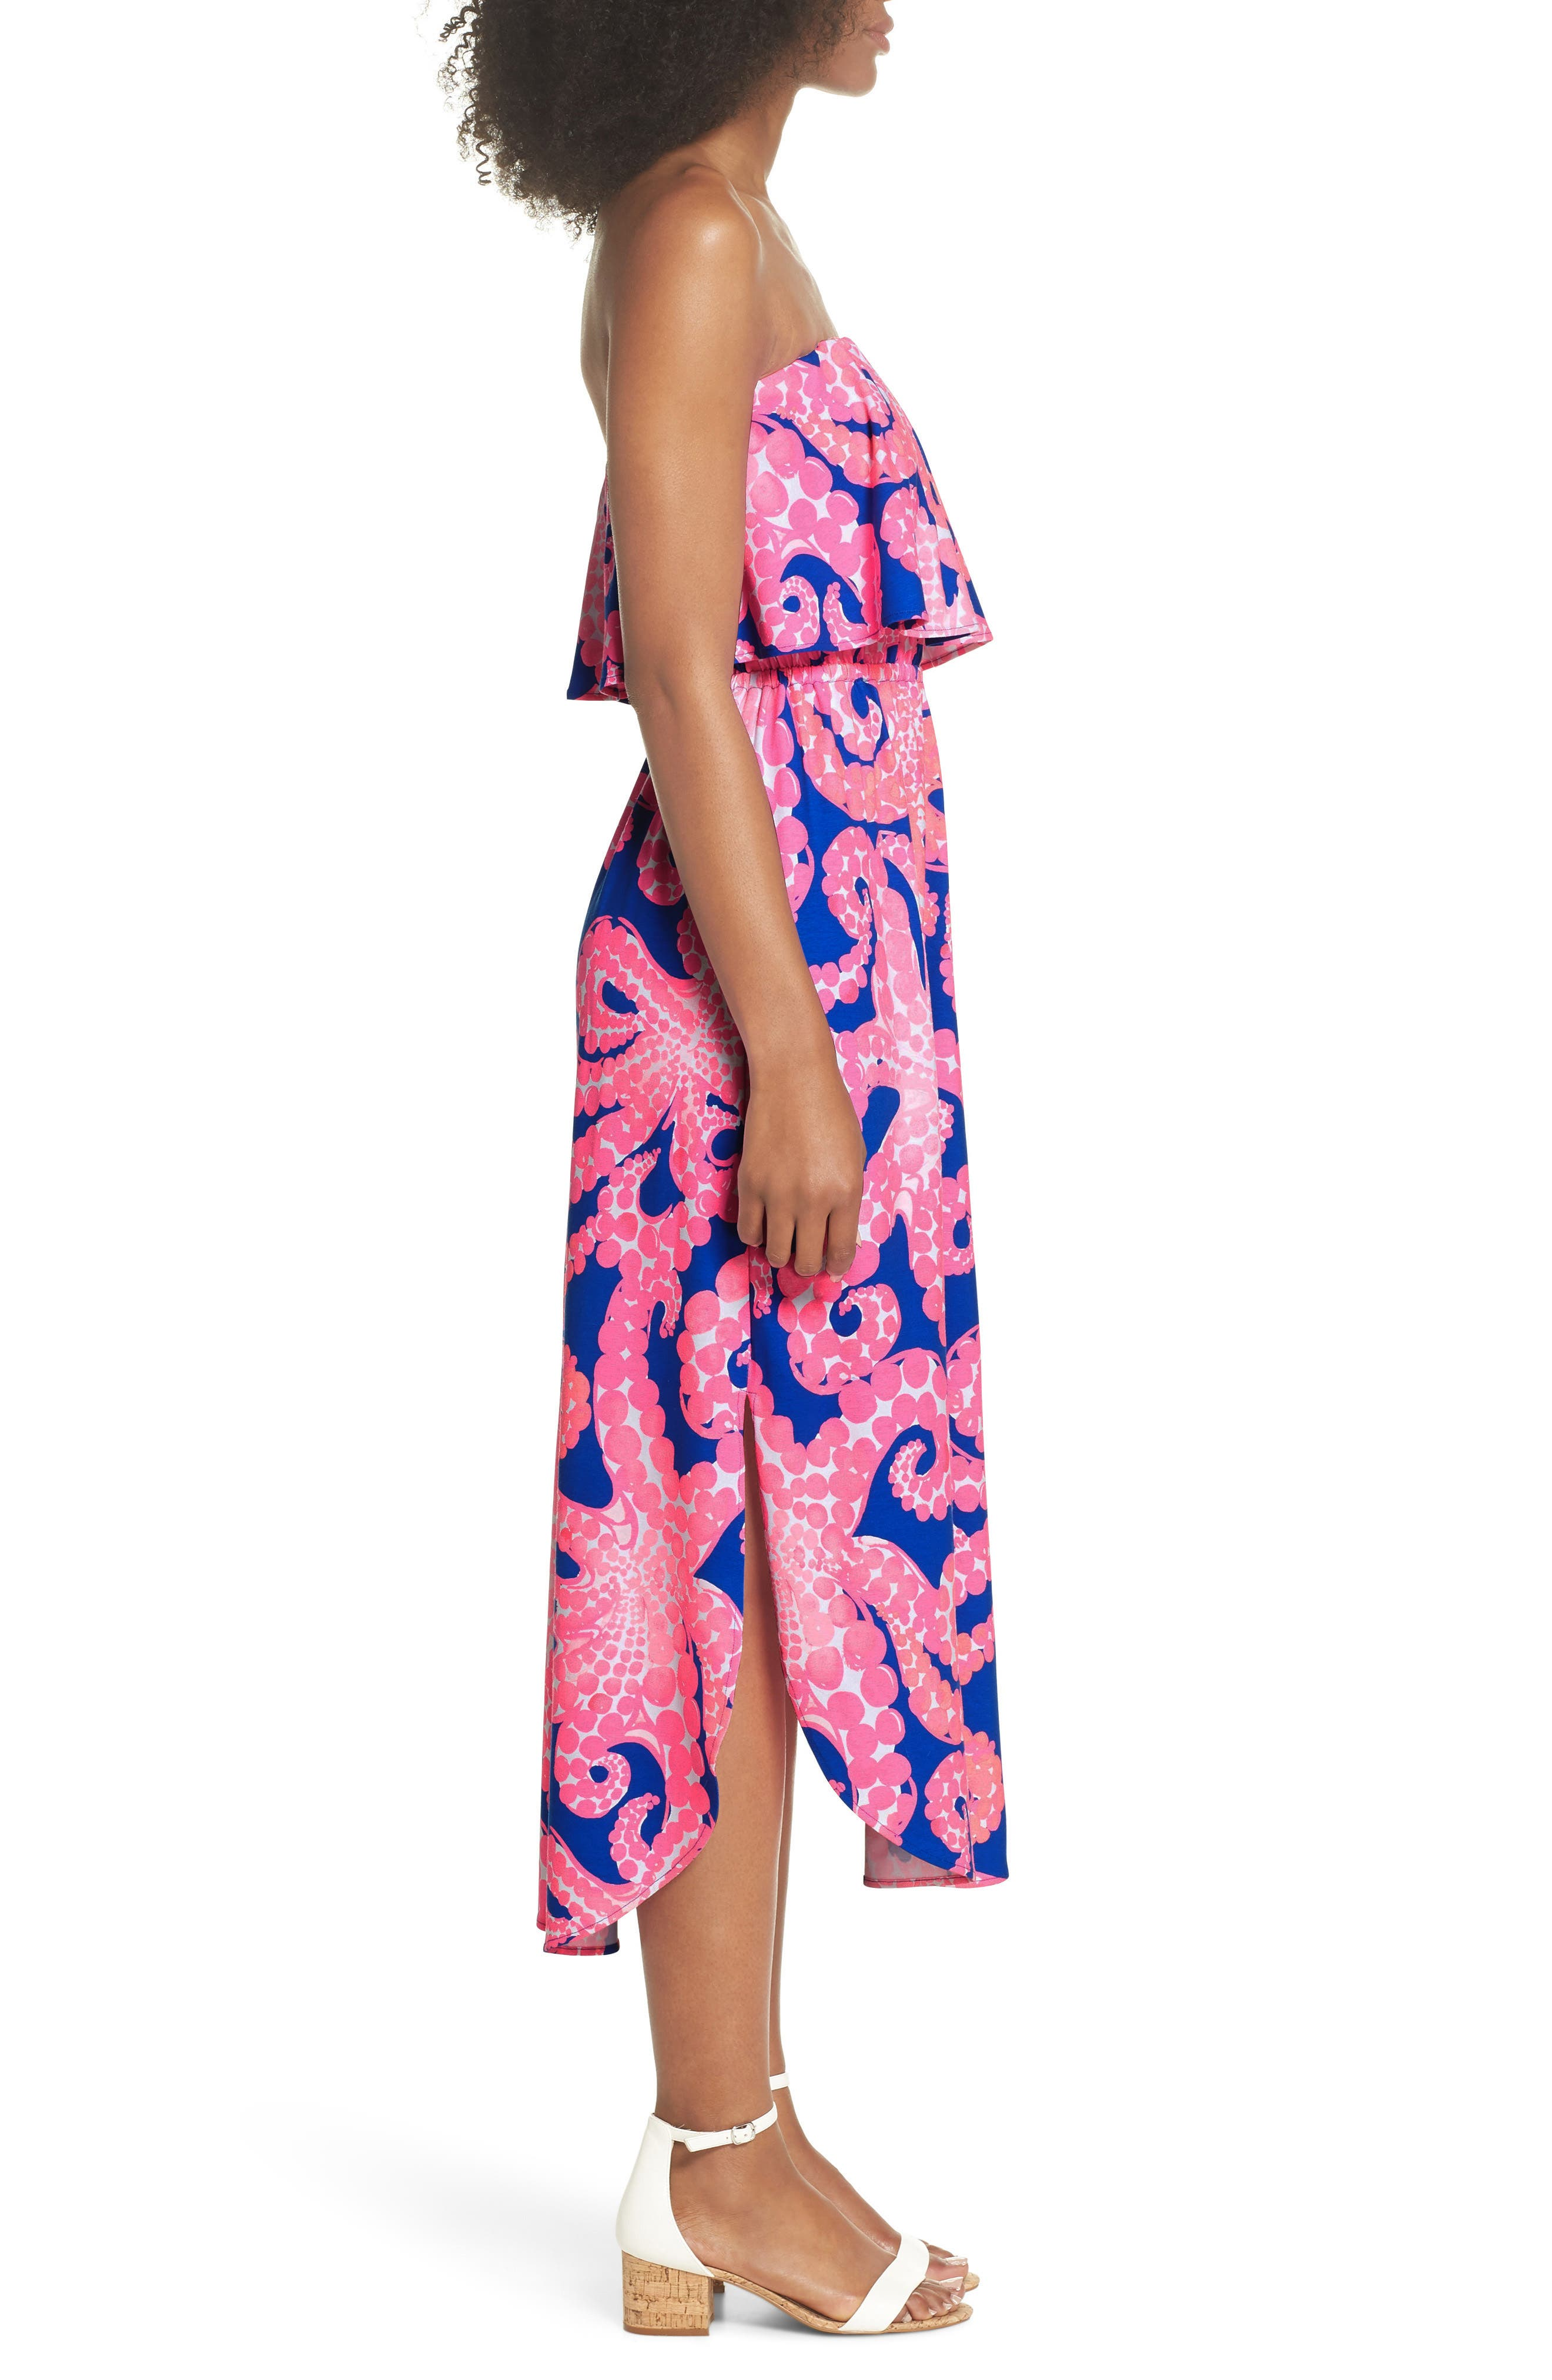 Meridian Strapless Midi Dress,                             Alternate thumbnail 3, color,                             IKAT BLUE MOCEAN